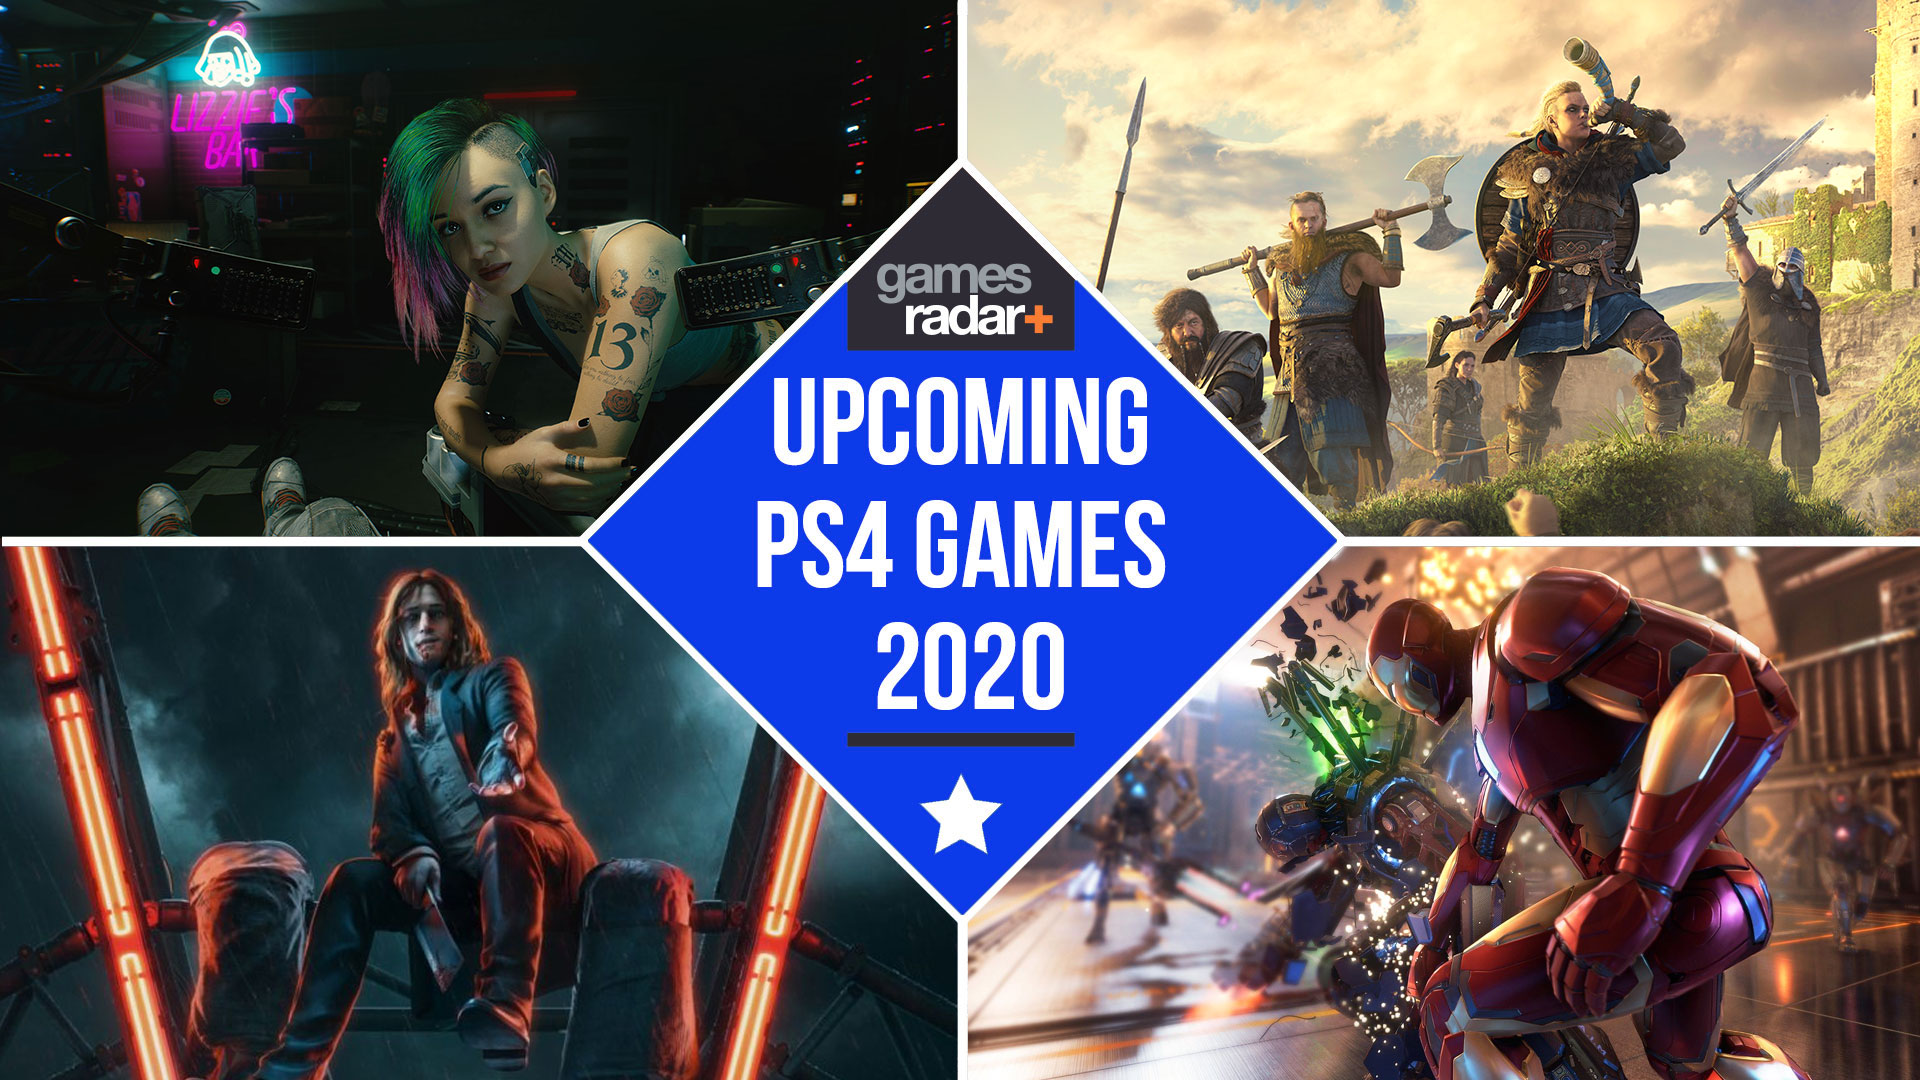 The upcoming PS4 games for 2020 and beyond | GamesRadar+